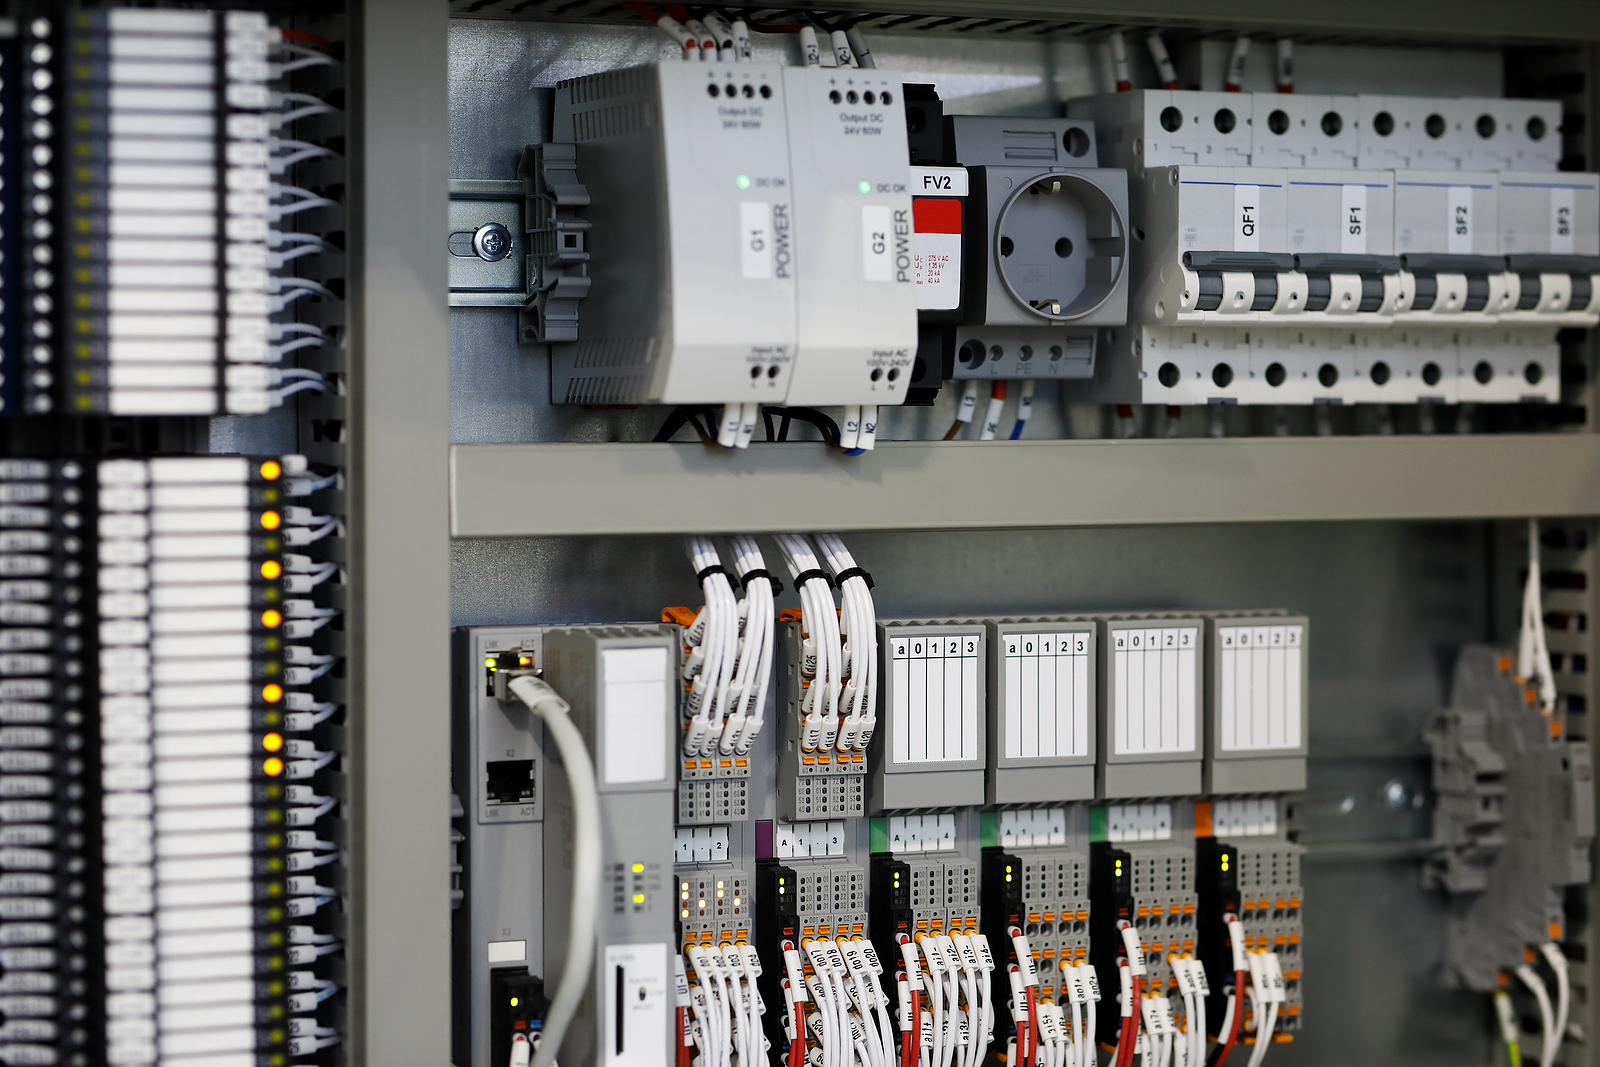 Programmable Logic Controllers Plc Based Control System. Selecti